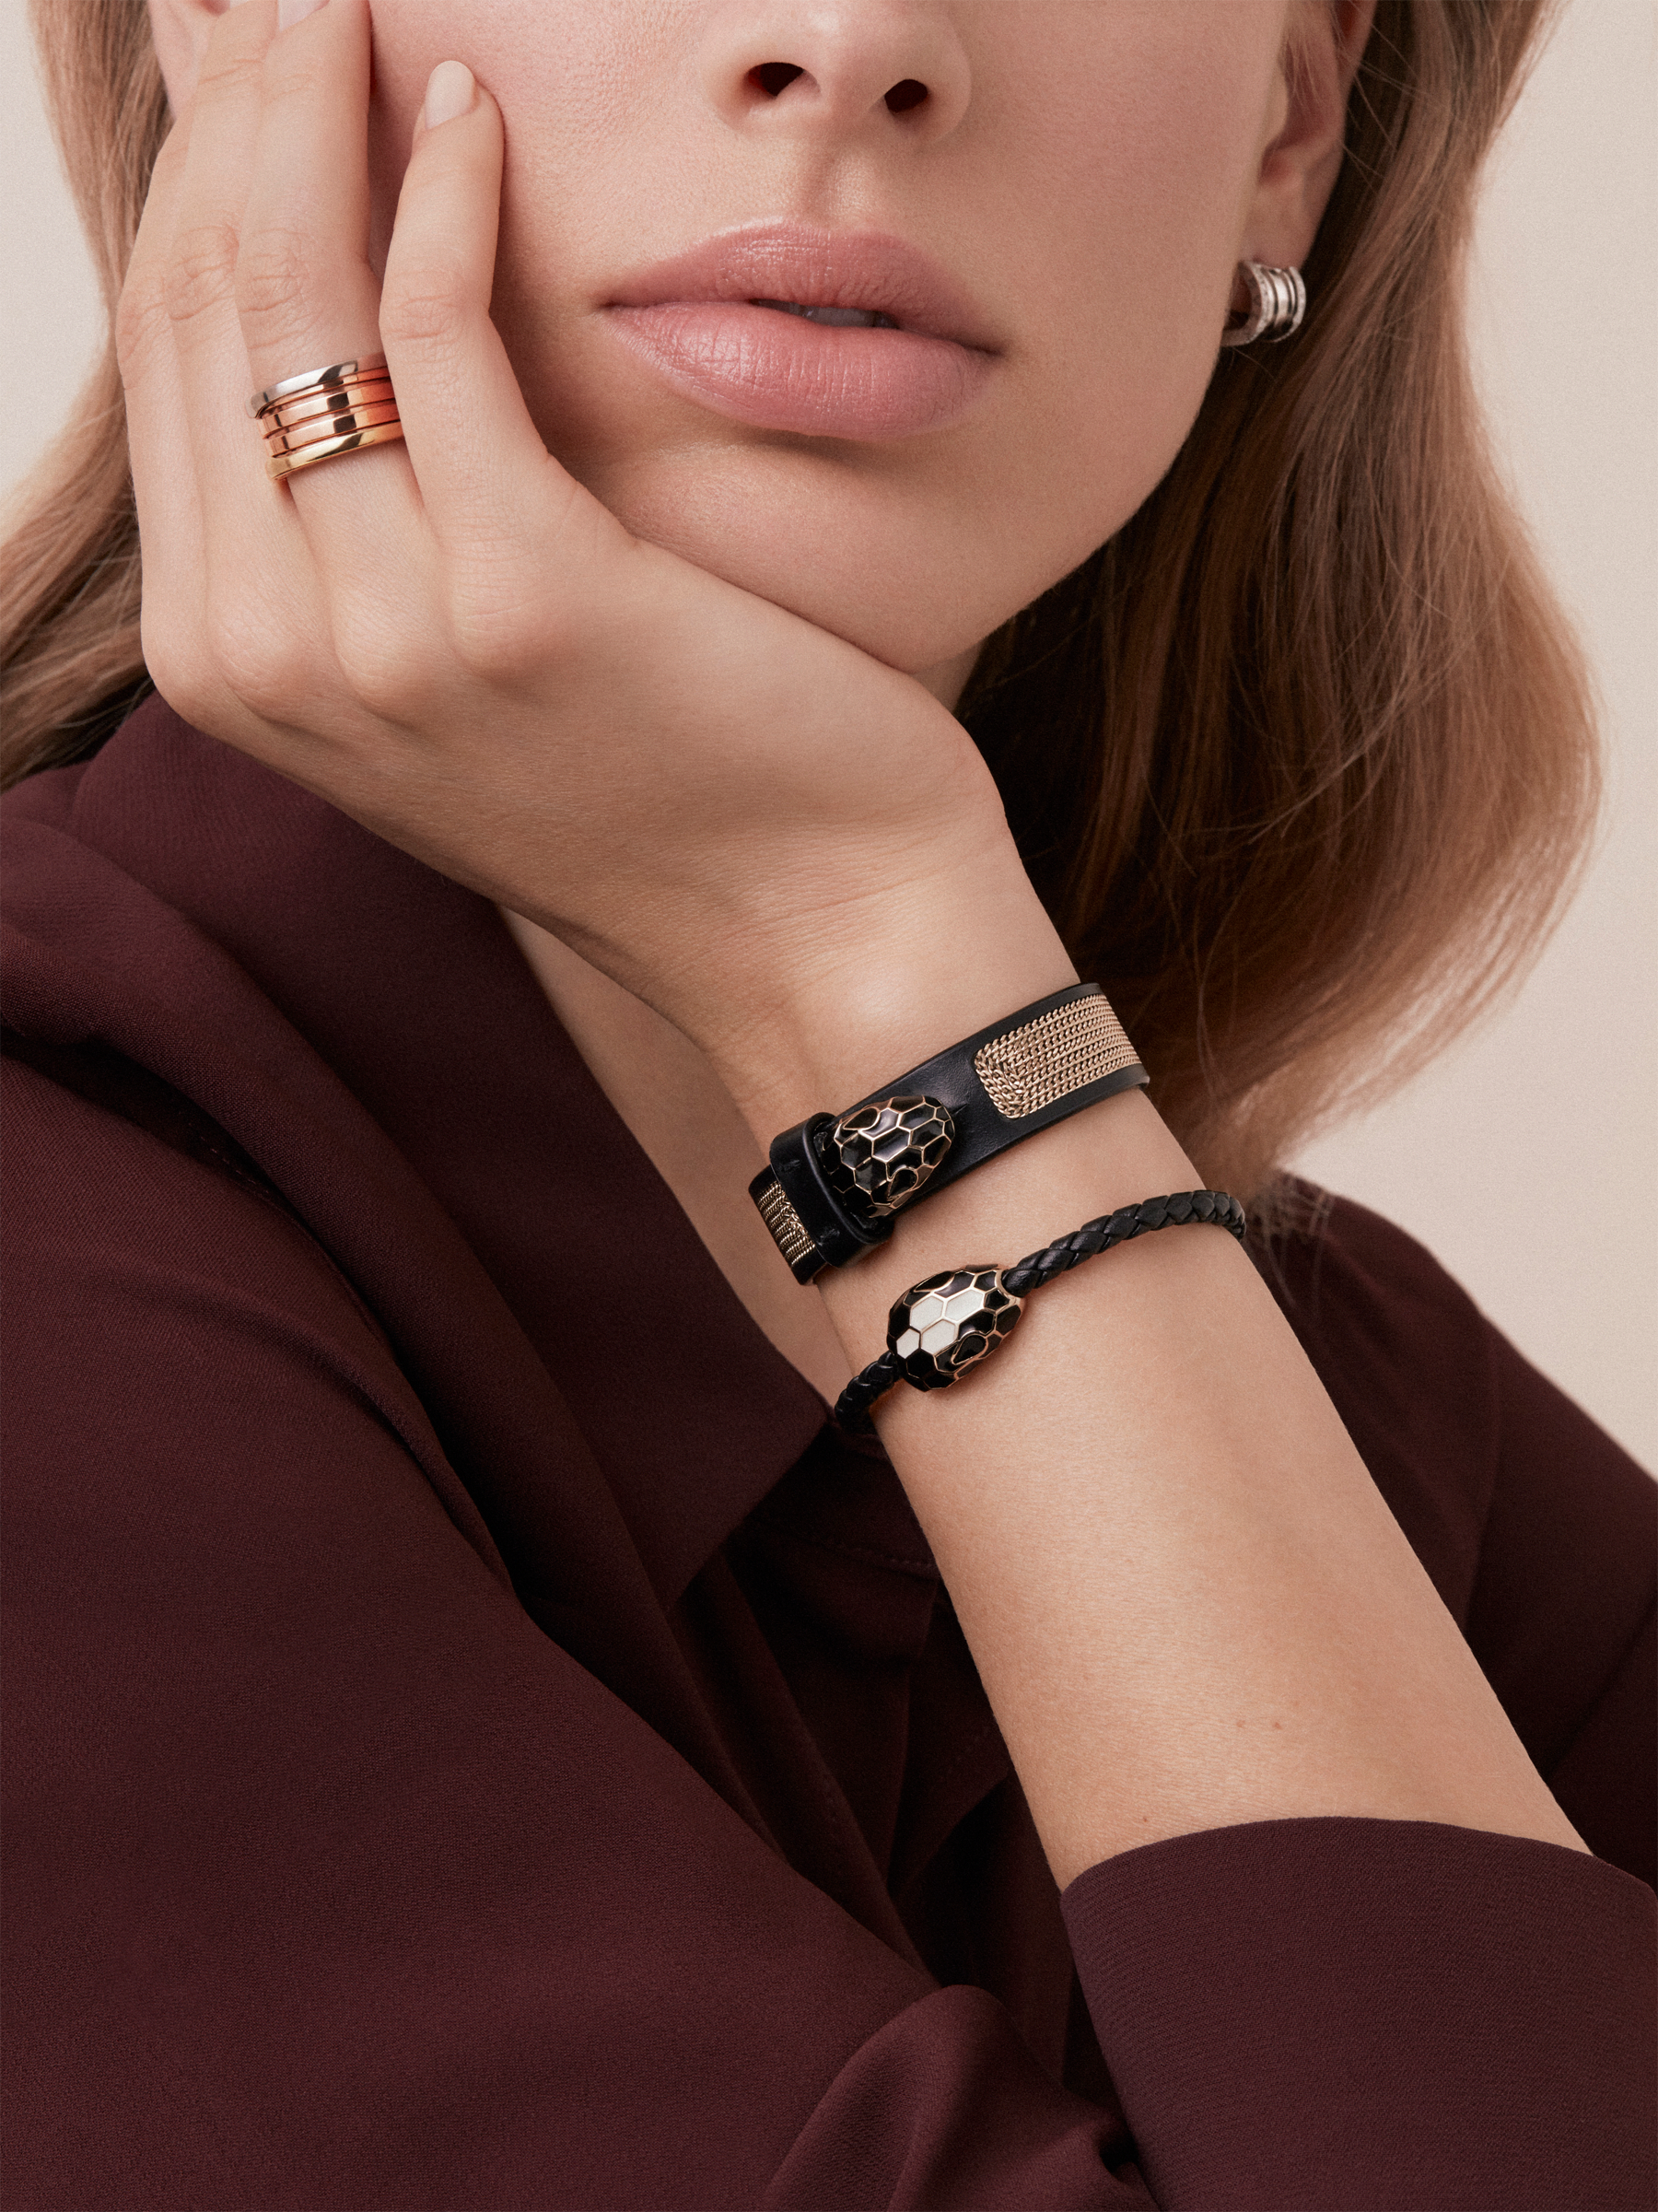 Serpenti Forever bracelet in white agate calf leather with a Million Chain motif. Light gold plated hardware and iconic Serpenti head closure in black and white enamel with black enamel eyes. BRACLT-SERPENTIU-CP image 2